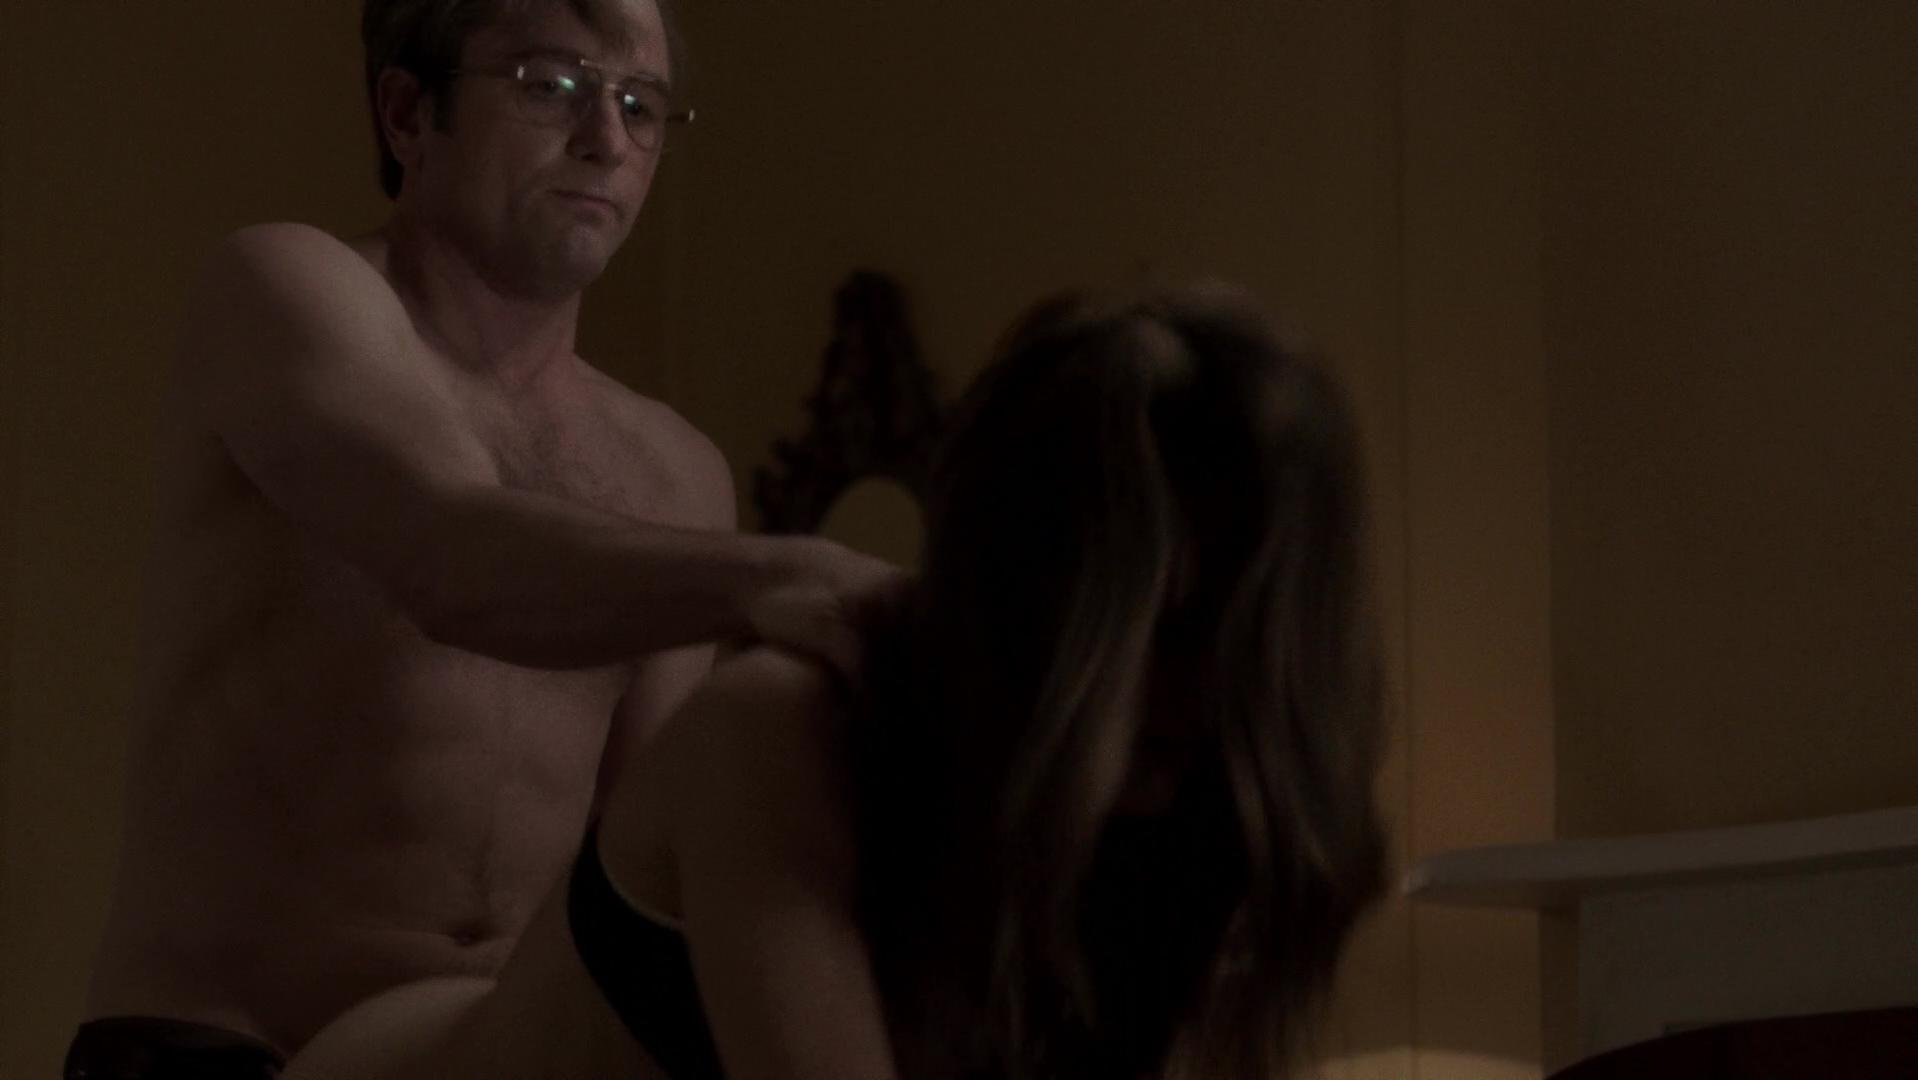 Keri Russell nude - The Americans s02e06 (2014)